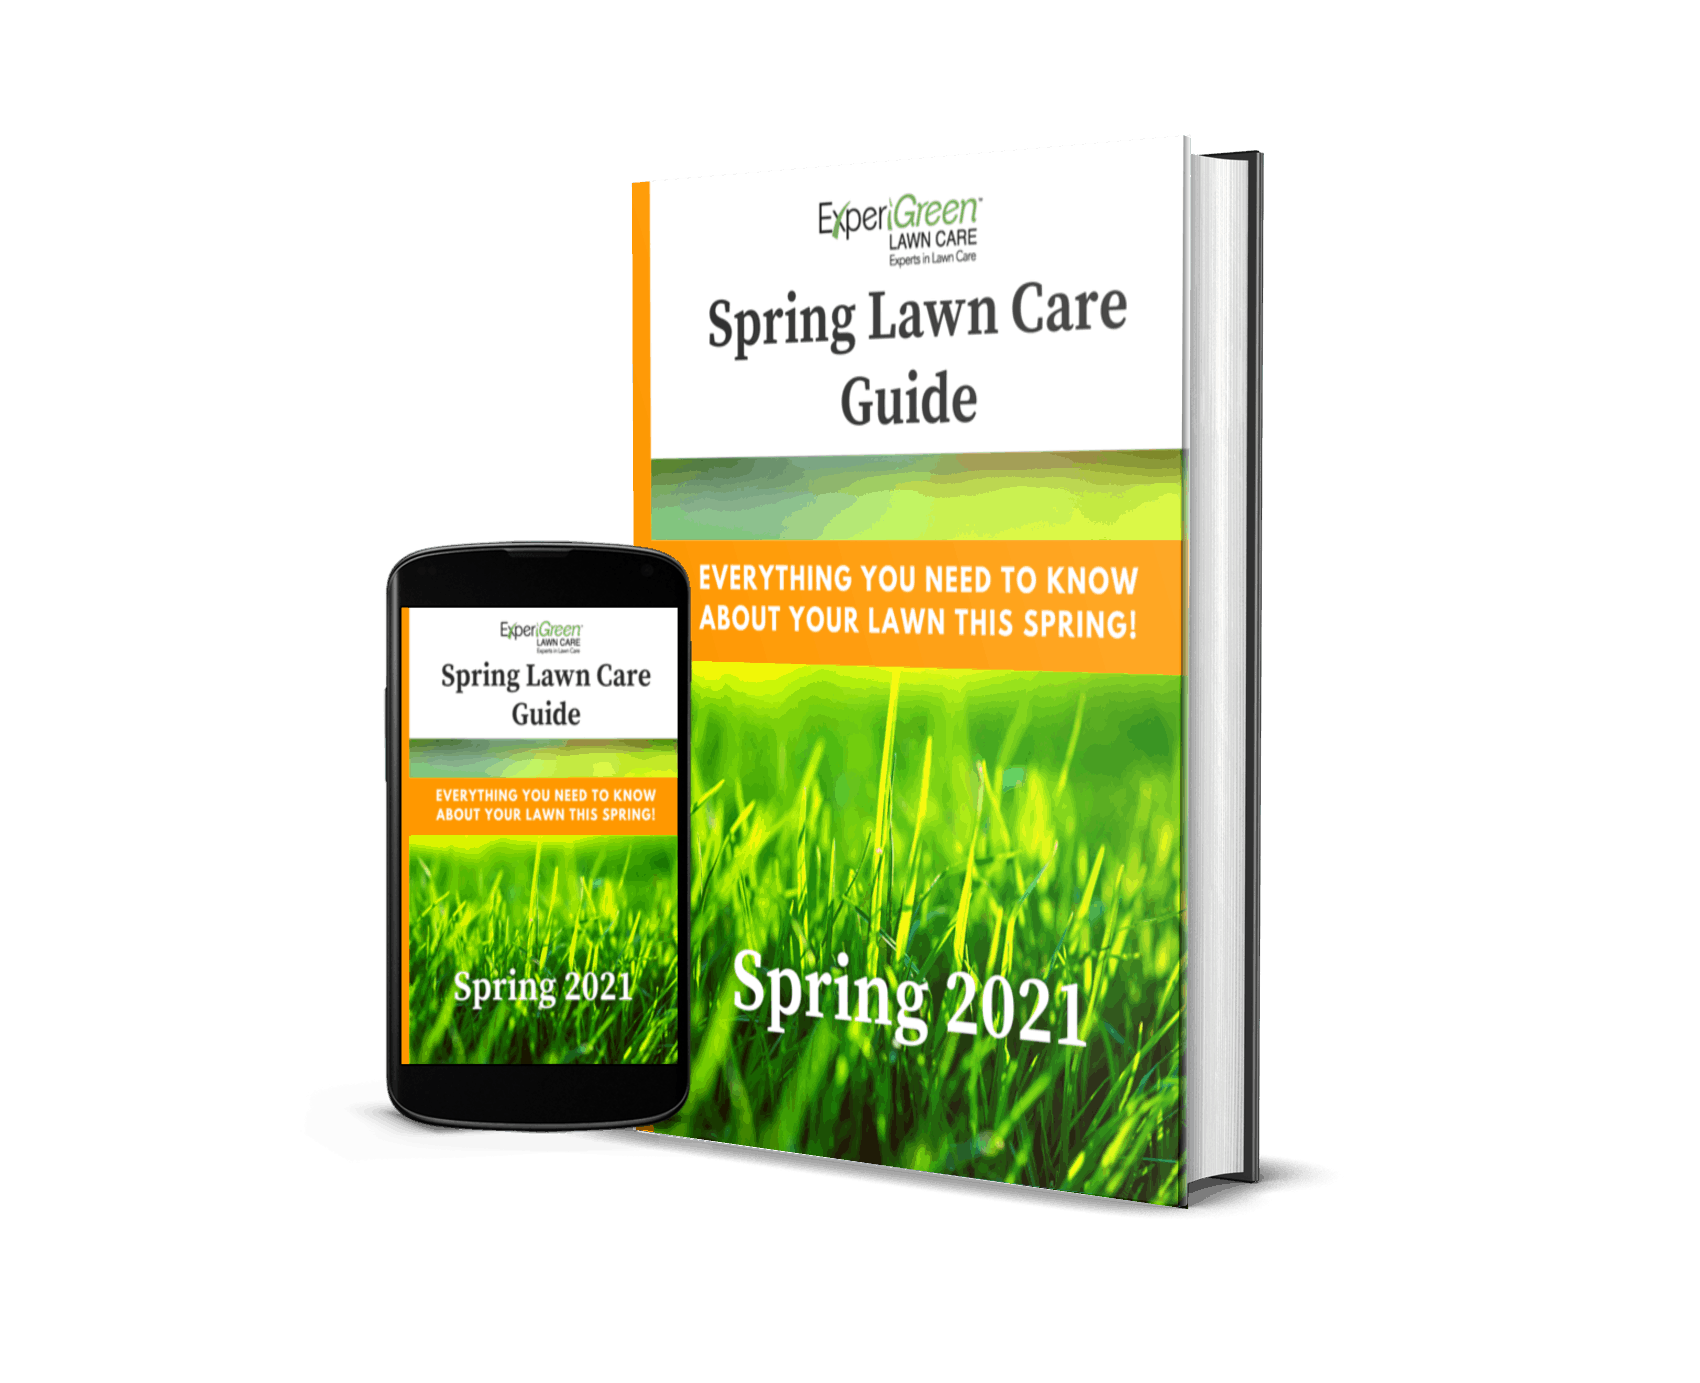 ExperiGreen Spring 2021 Lawn Care Guide